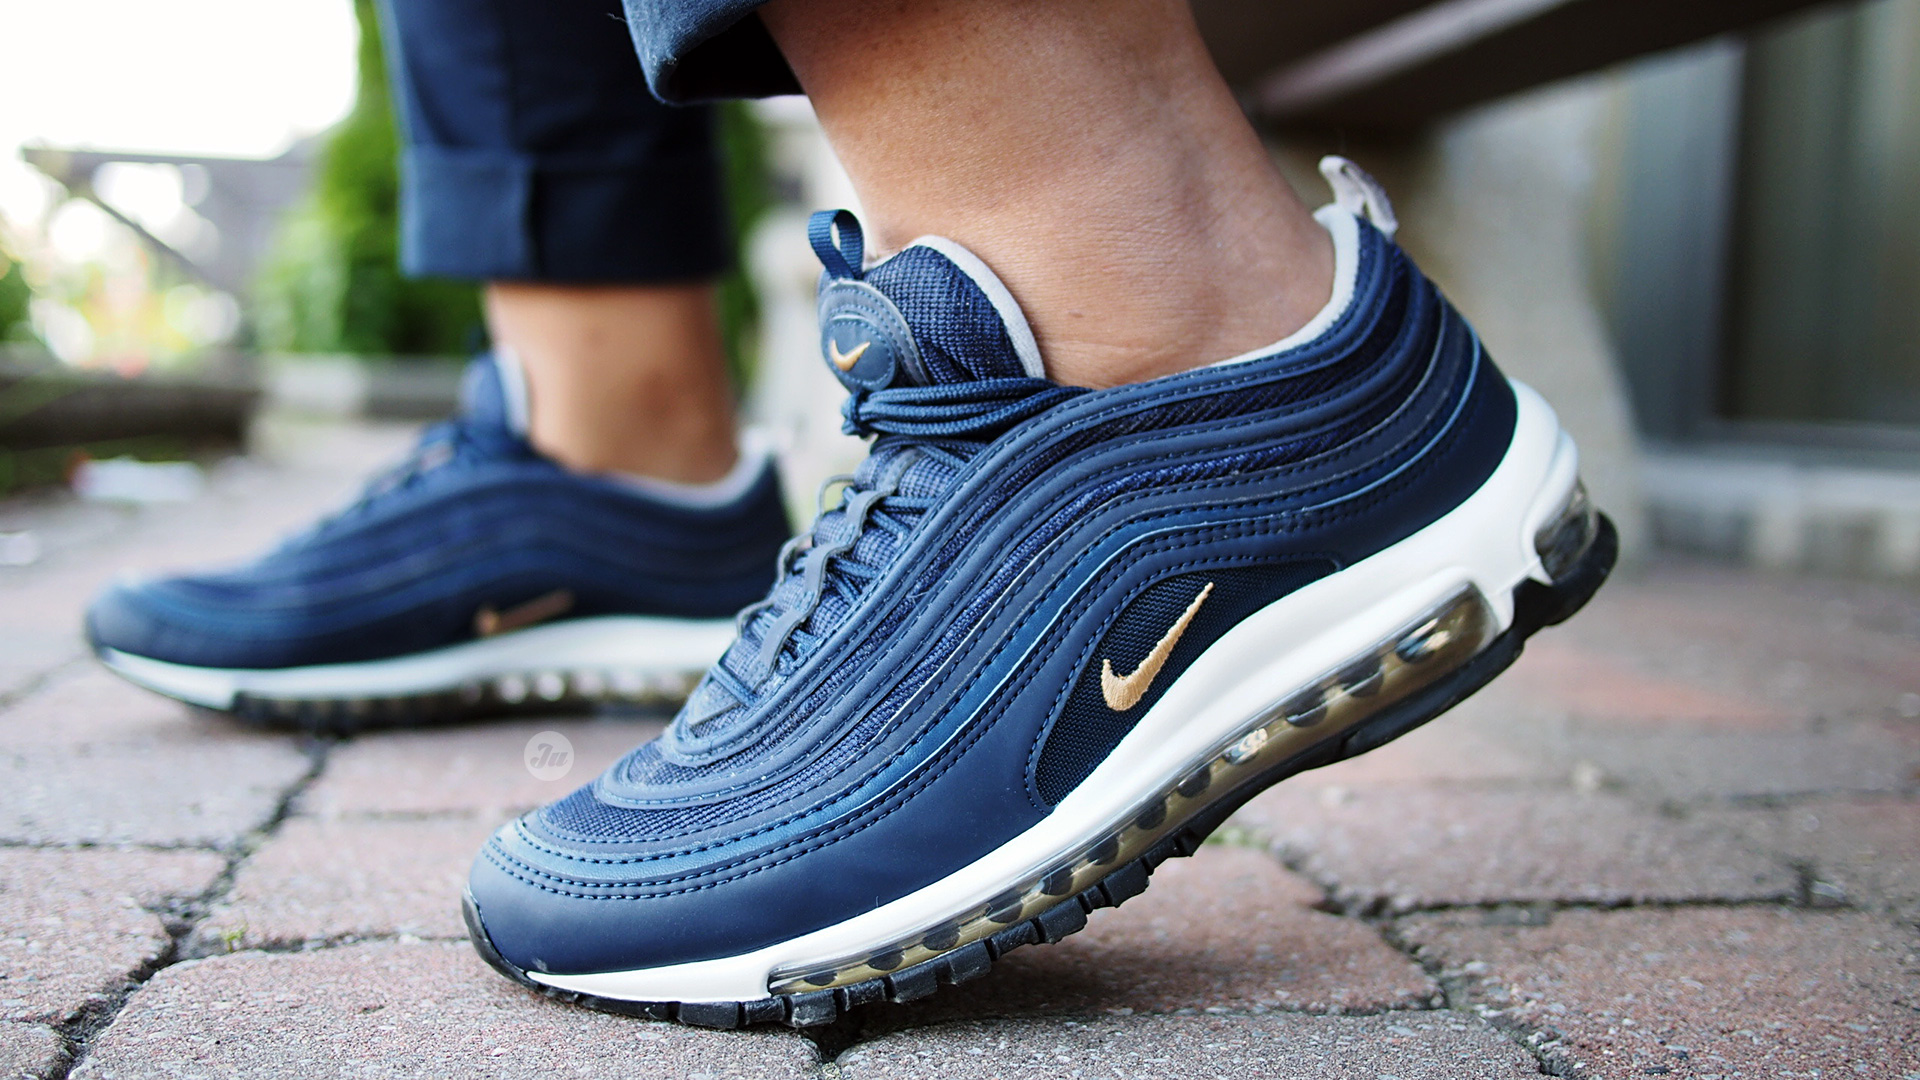 There s no shortage of the Air Max 97 this year! A look at the Midnight 92adfe307